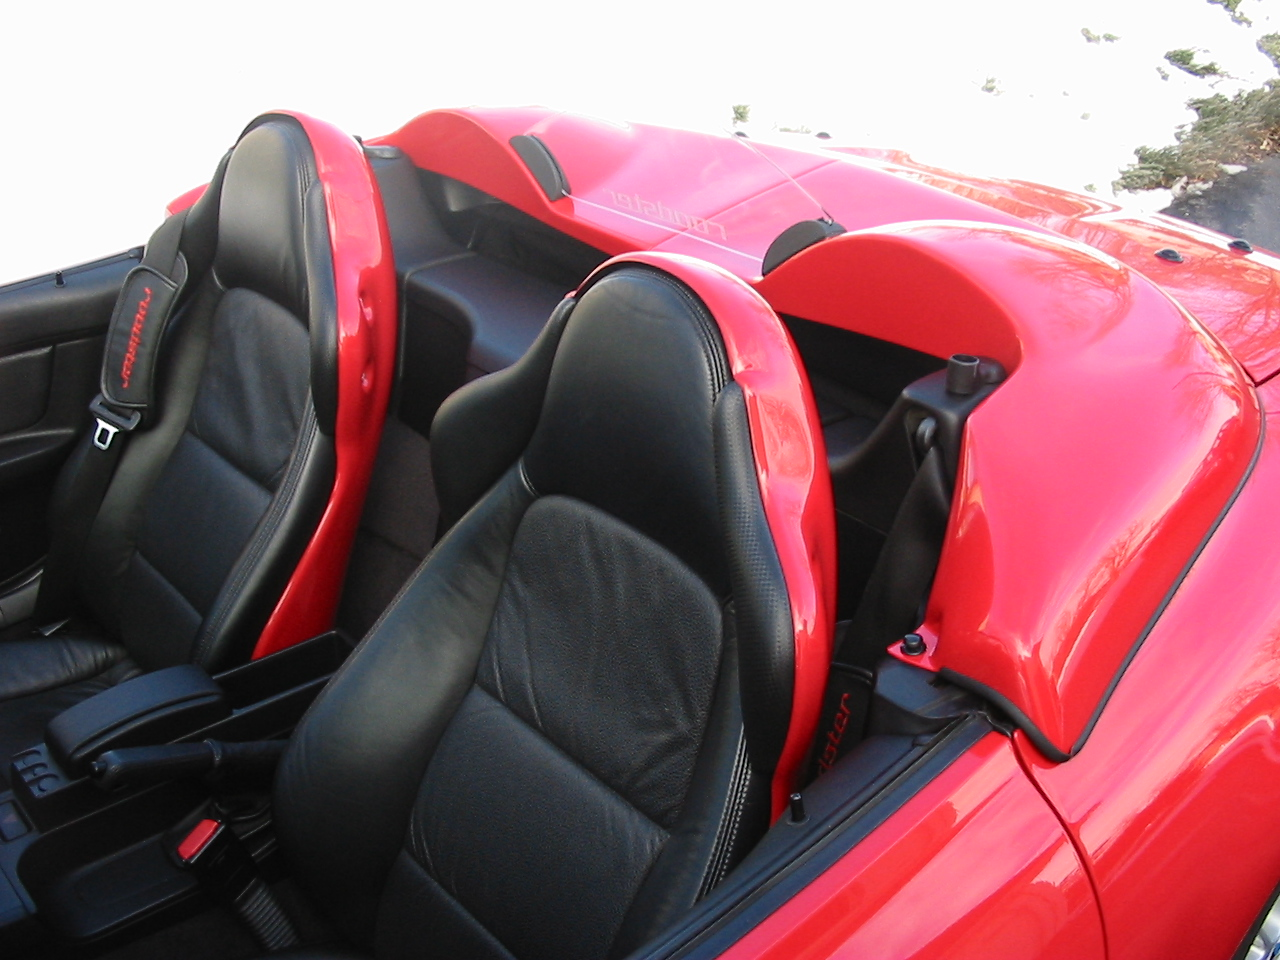 Bmw Z3 Seat Covers ReplacementSeat Covers For Bmw X5